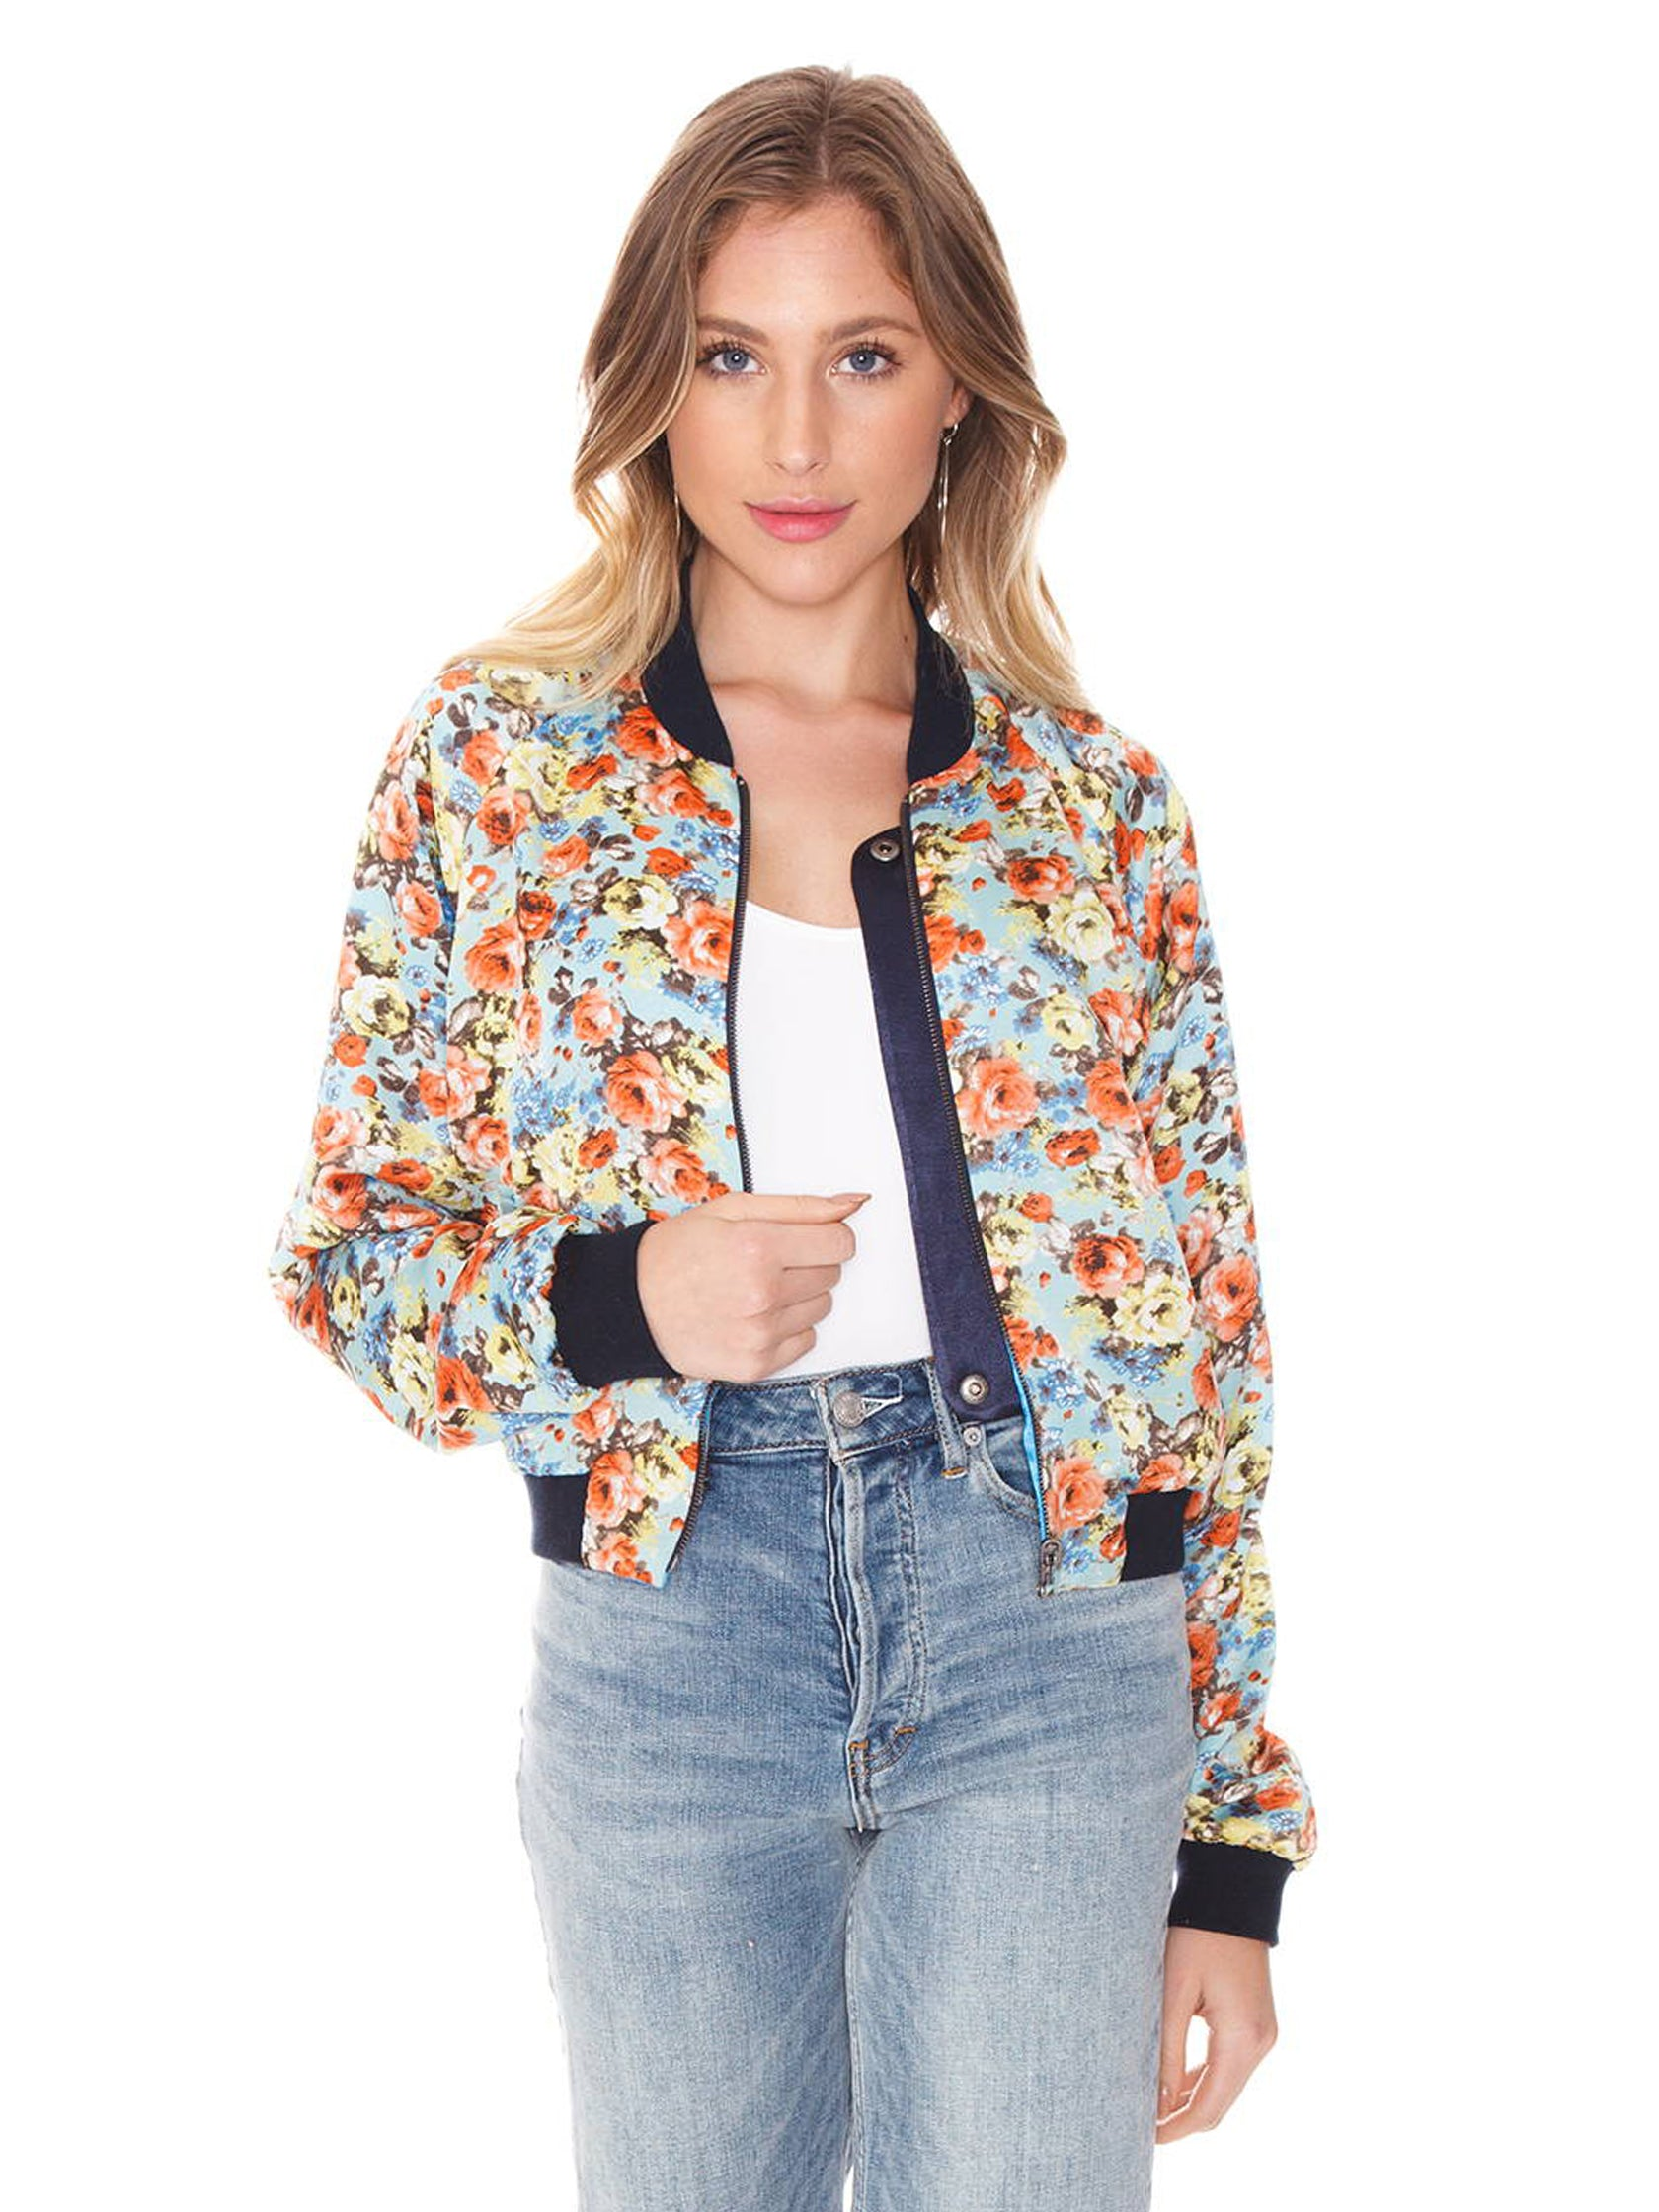 Girl wearing a jacket rental from FLETCH called Blue Reversible Bomber